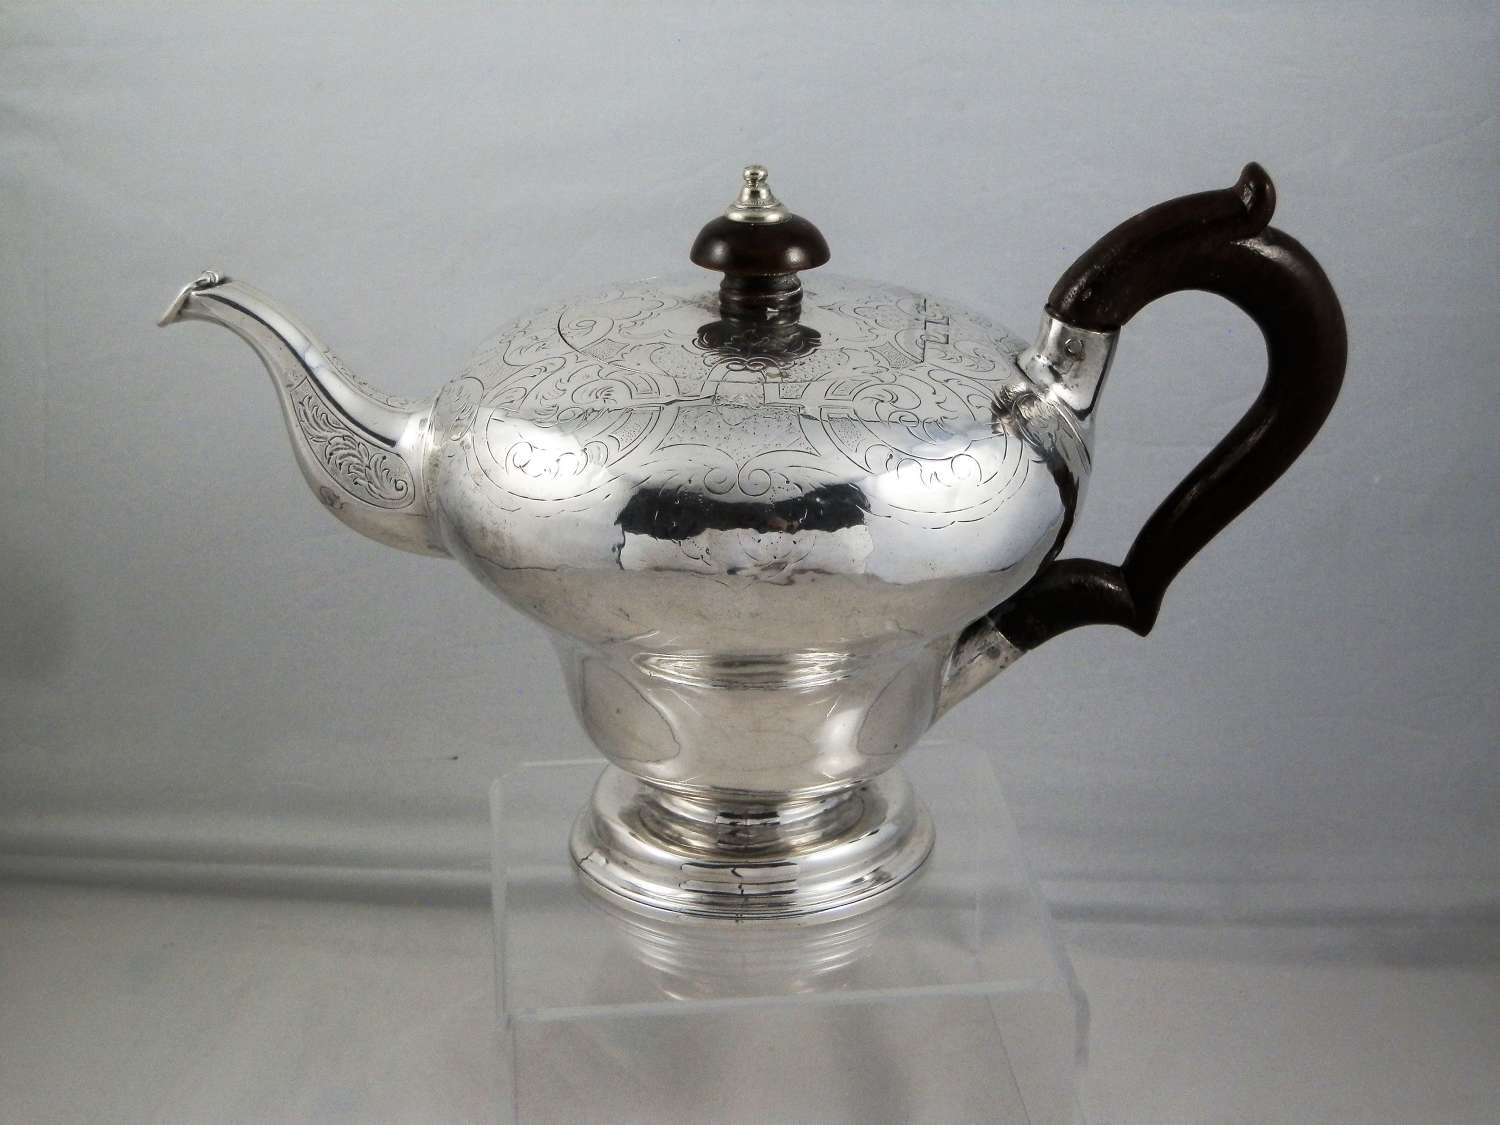 William IV silver teapot, London 1836